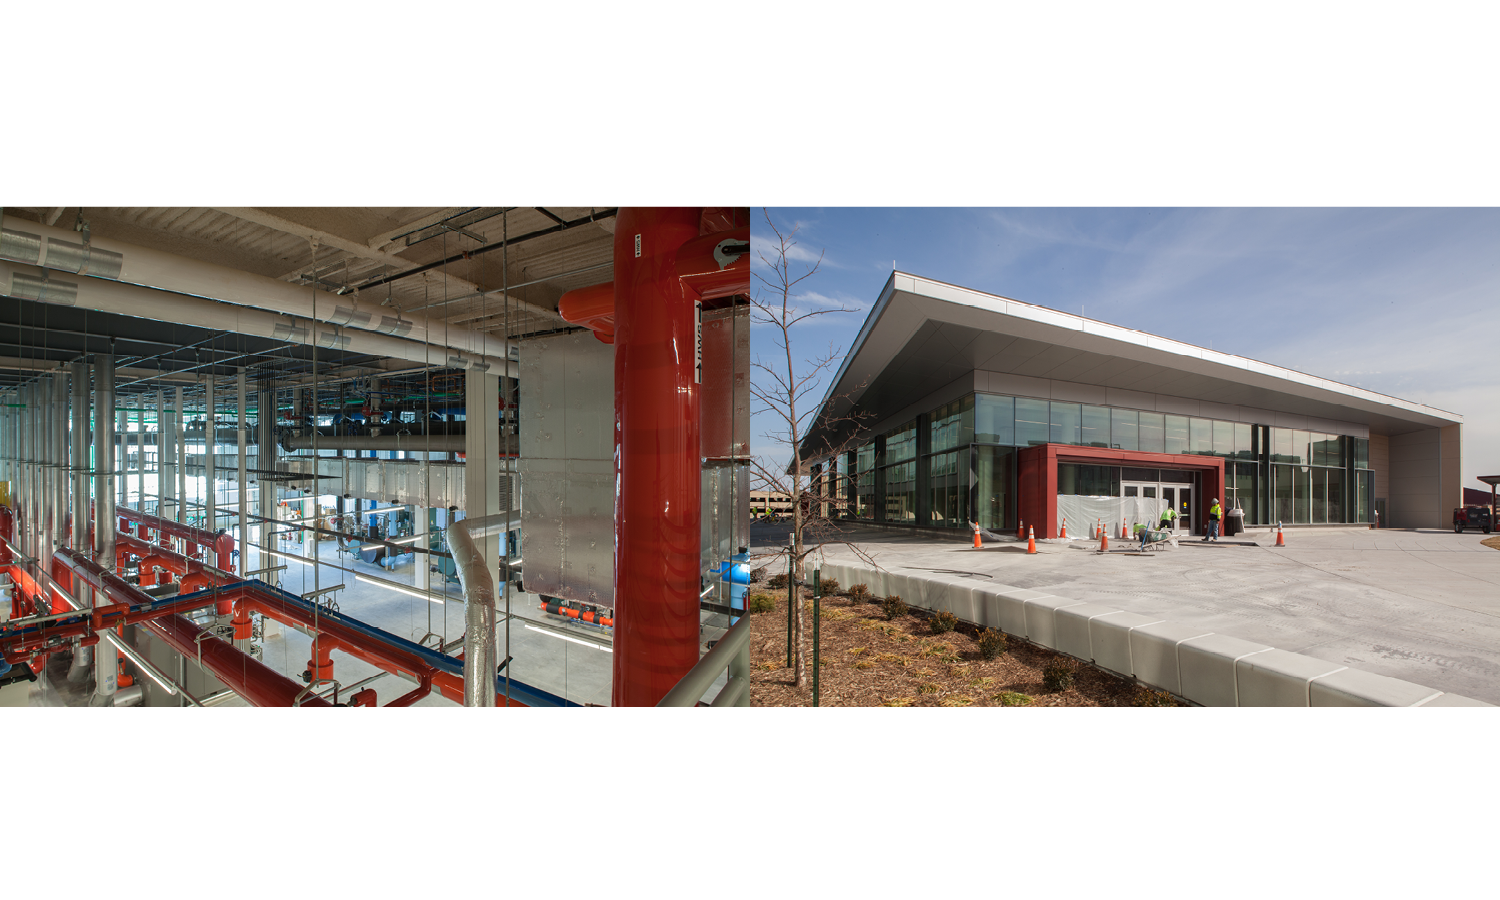 The University of Kansas Central District P3 project has reached another important milestone - the new Burge Student Union and Central Utility Plant have been completed four months ahead of schedule!